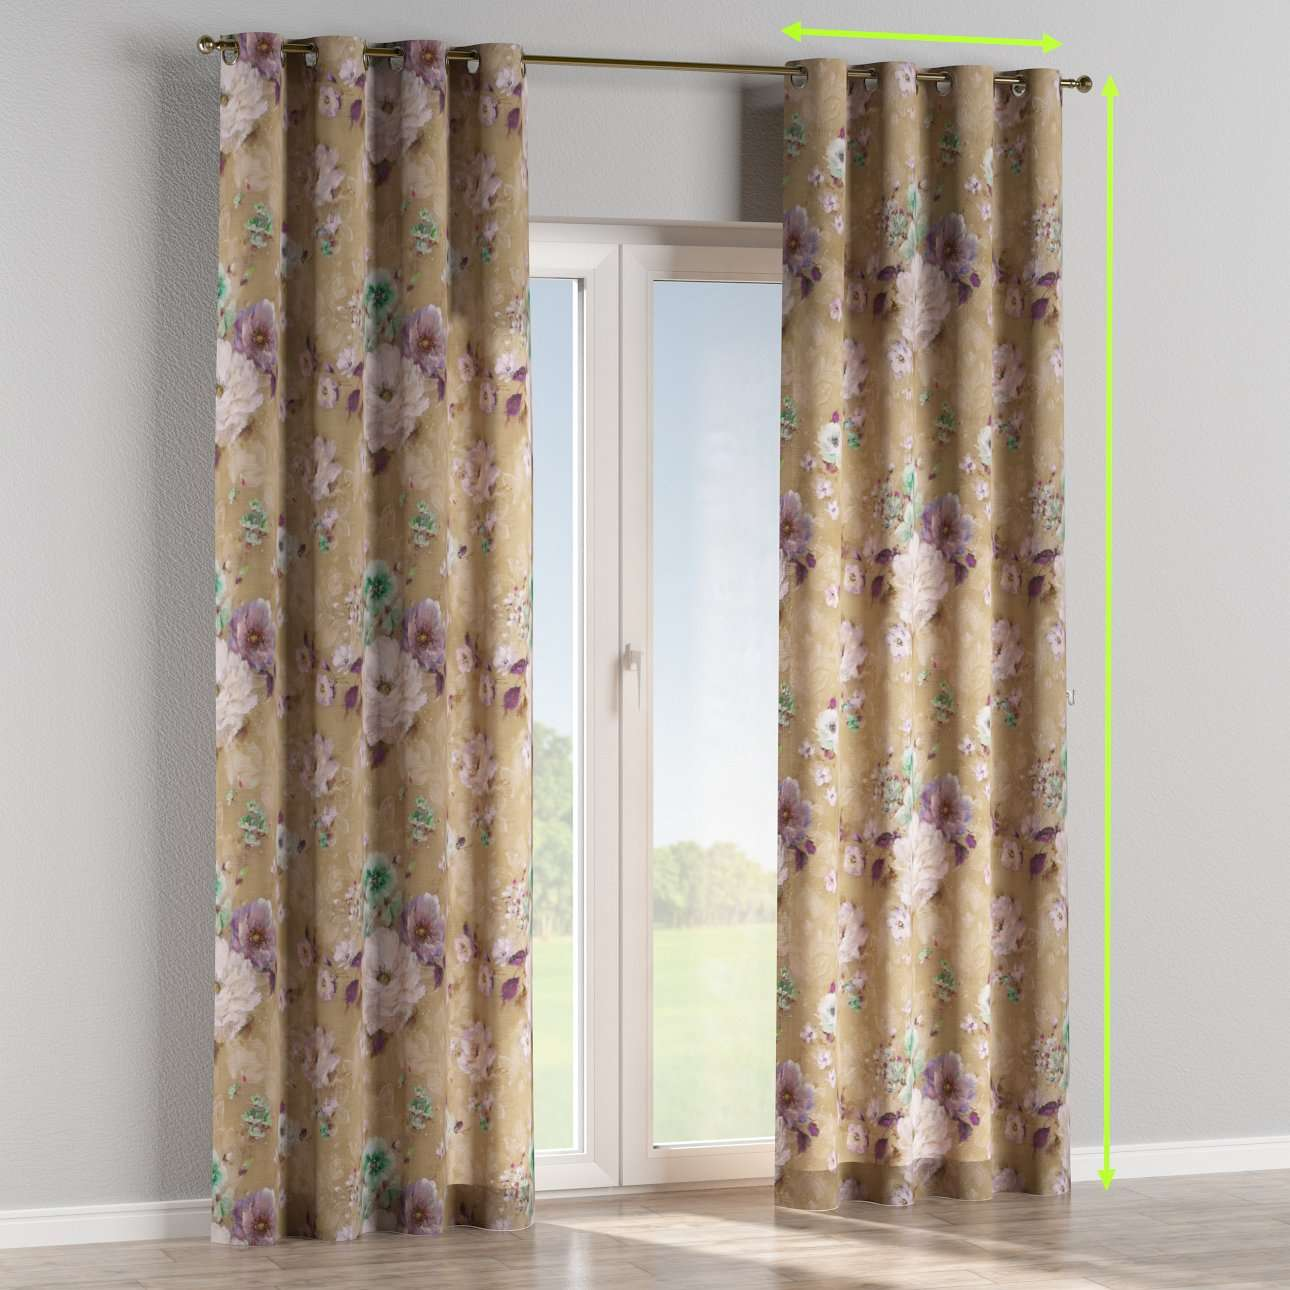 Eyelet lined curtains in collection Monet, fabric: 137-82